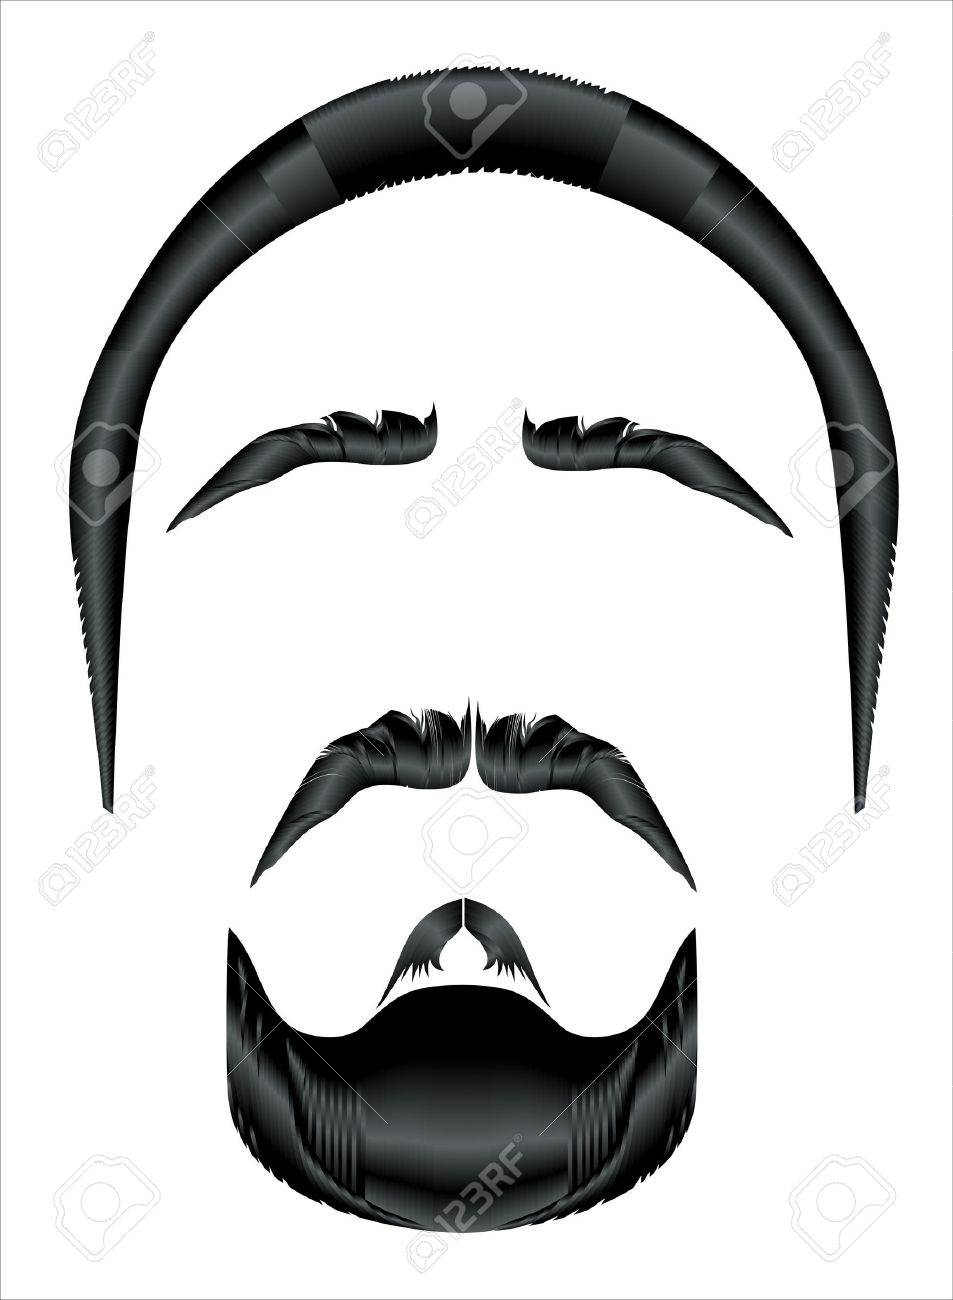 Mustache, beard and hairstyle on a white background Stock Vector - 17207354